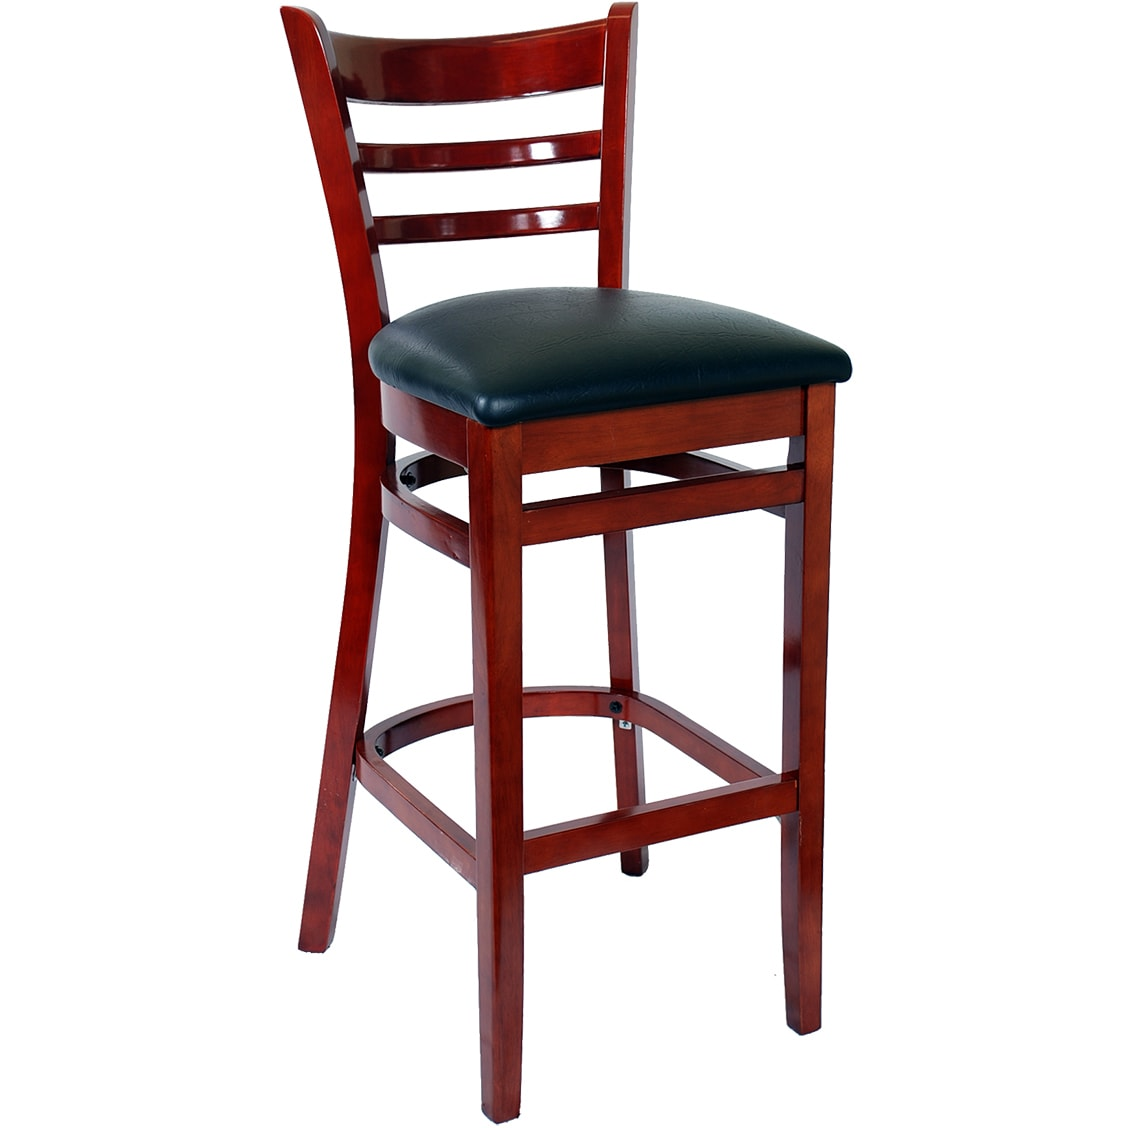 Awesome Ladder Back Wood Restaurant Bar Stool Uwap Interior Chair Design Uwaporg